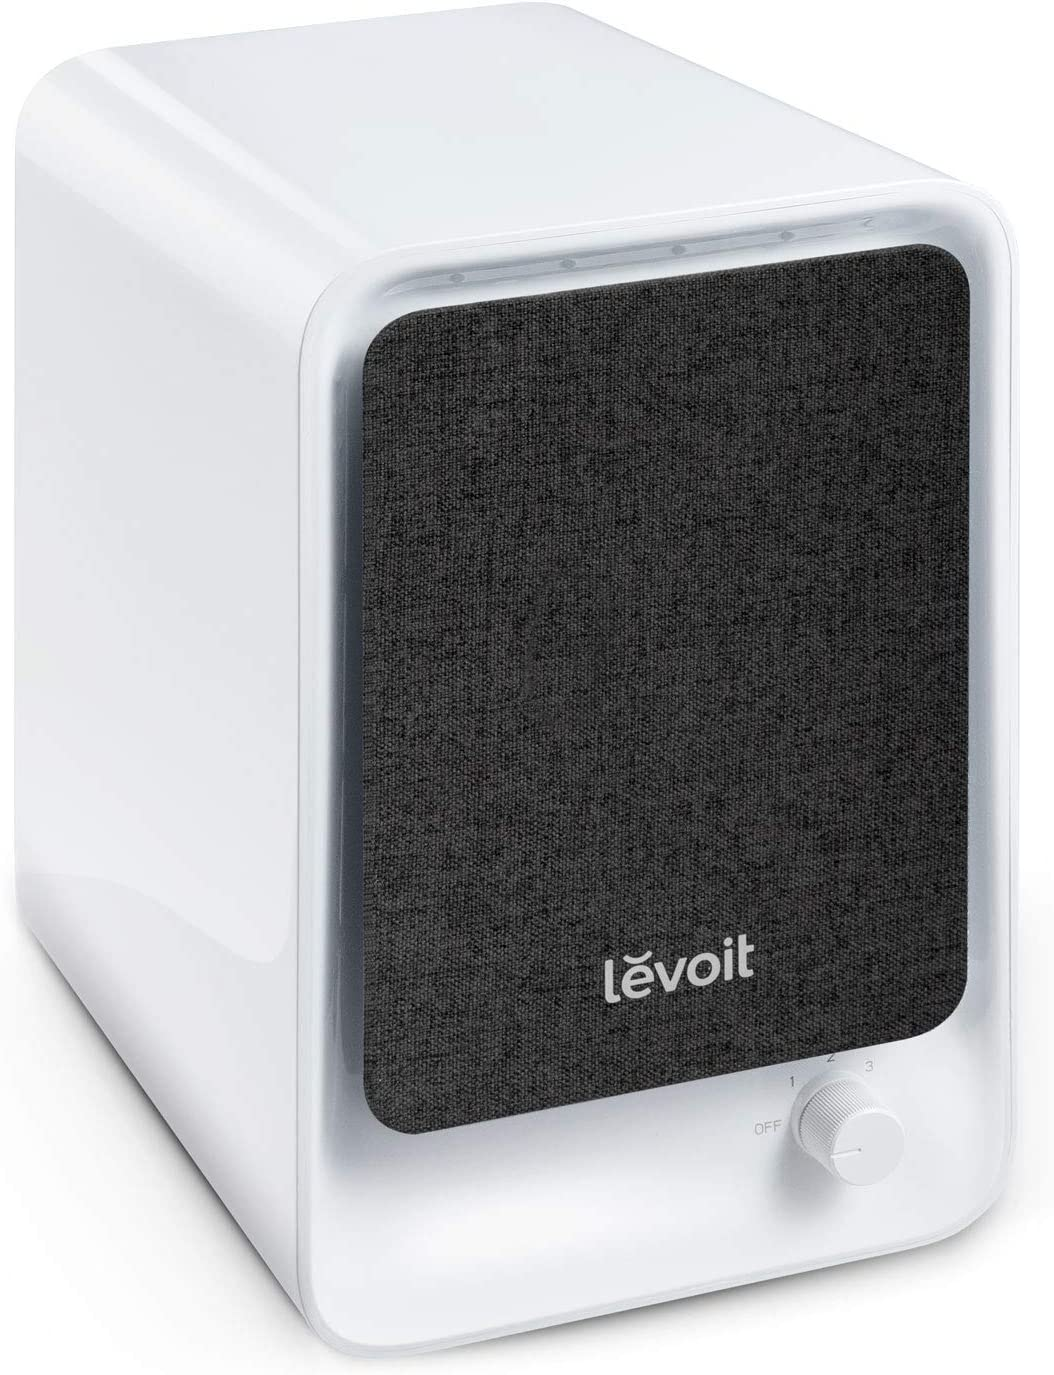 levoit lv-h126 review